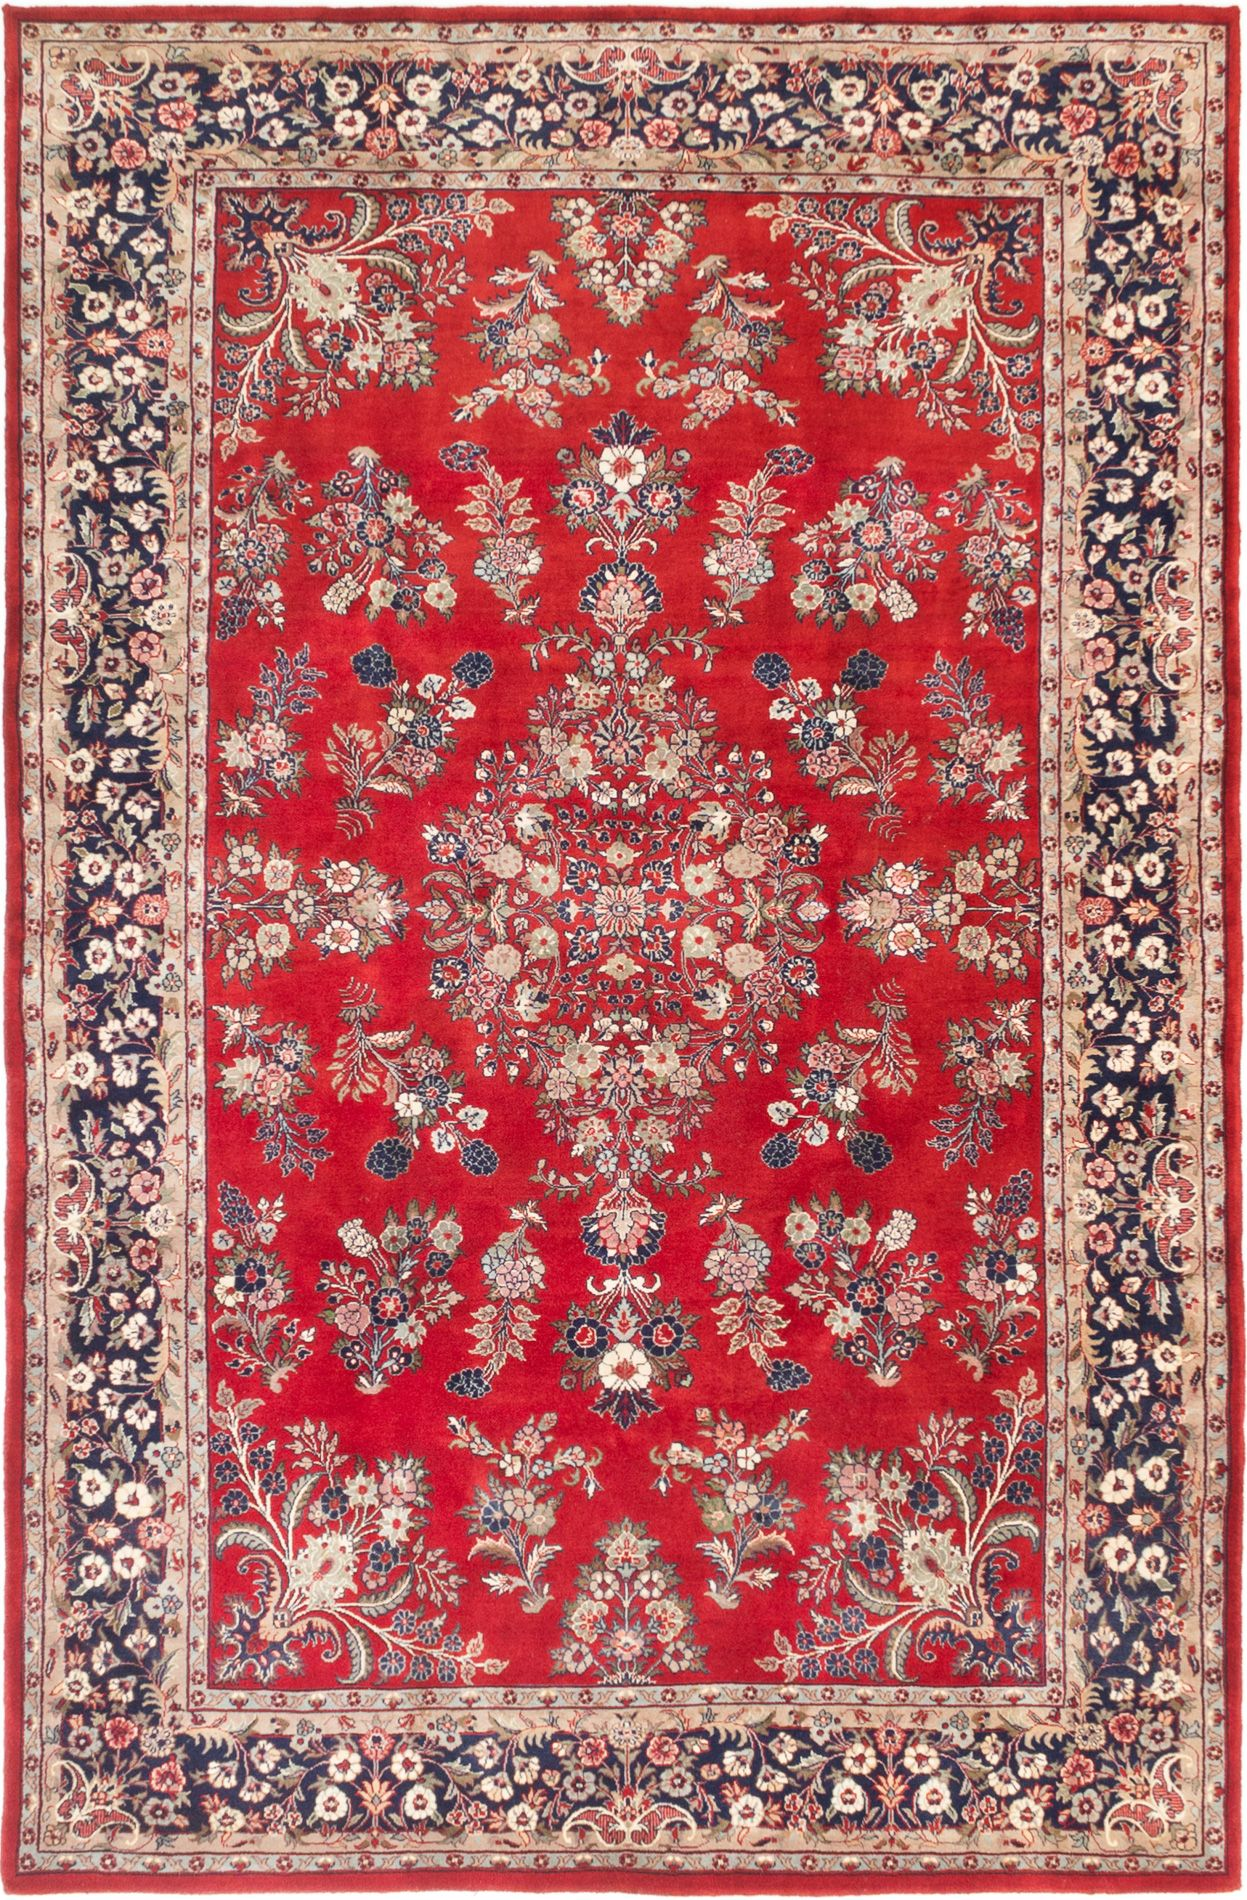 """Hand-knotted Royal Sarough Dark Red Wool Rug 5'10"""" x 9'0"""" Size: 5'10"""" x 9'0"""""""